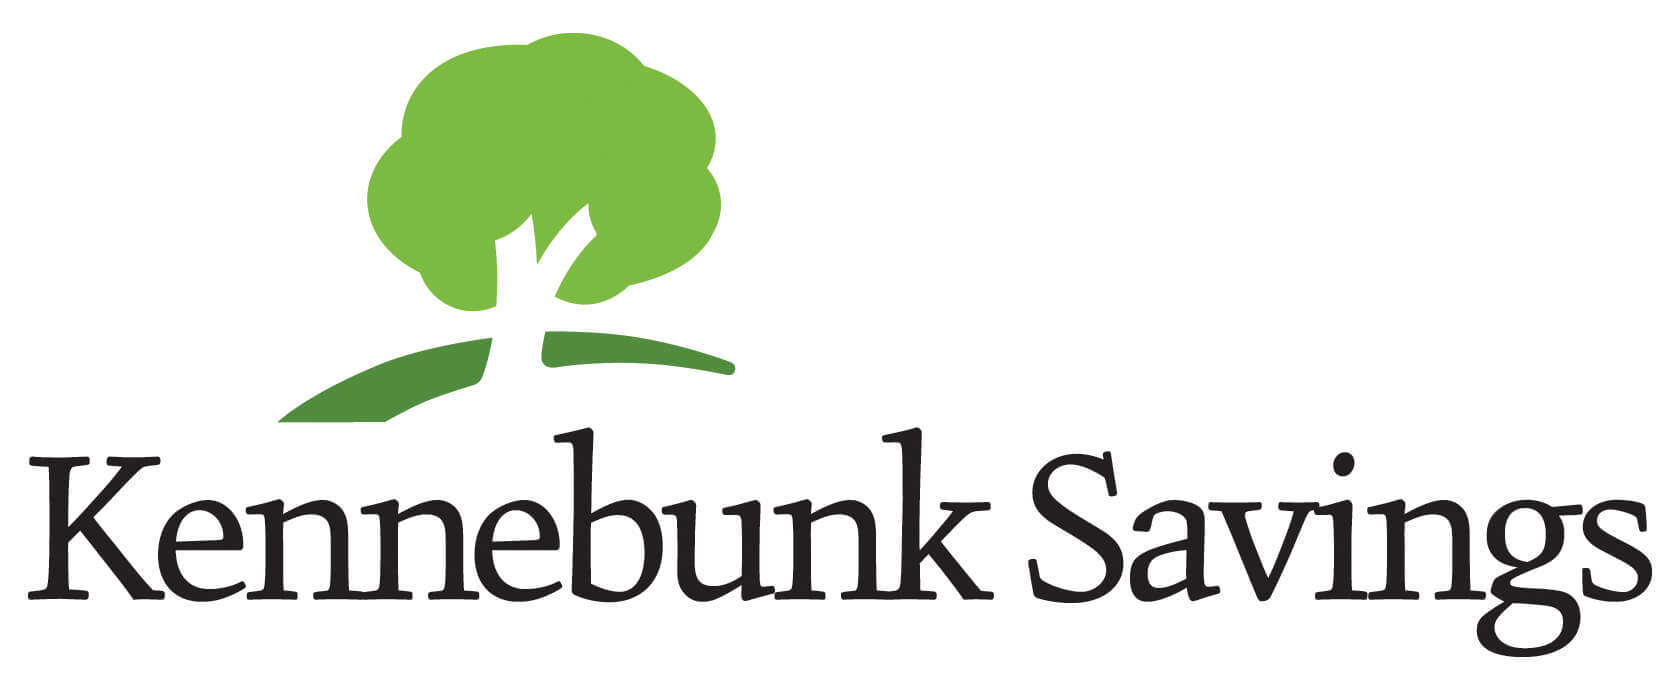 Kennebunk Savings Bank logo